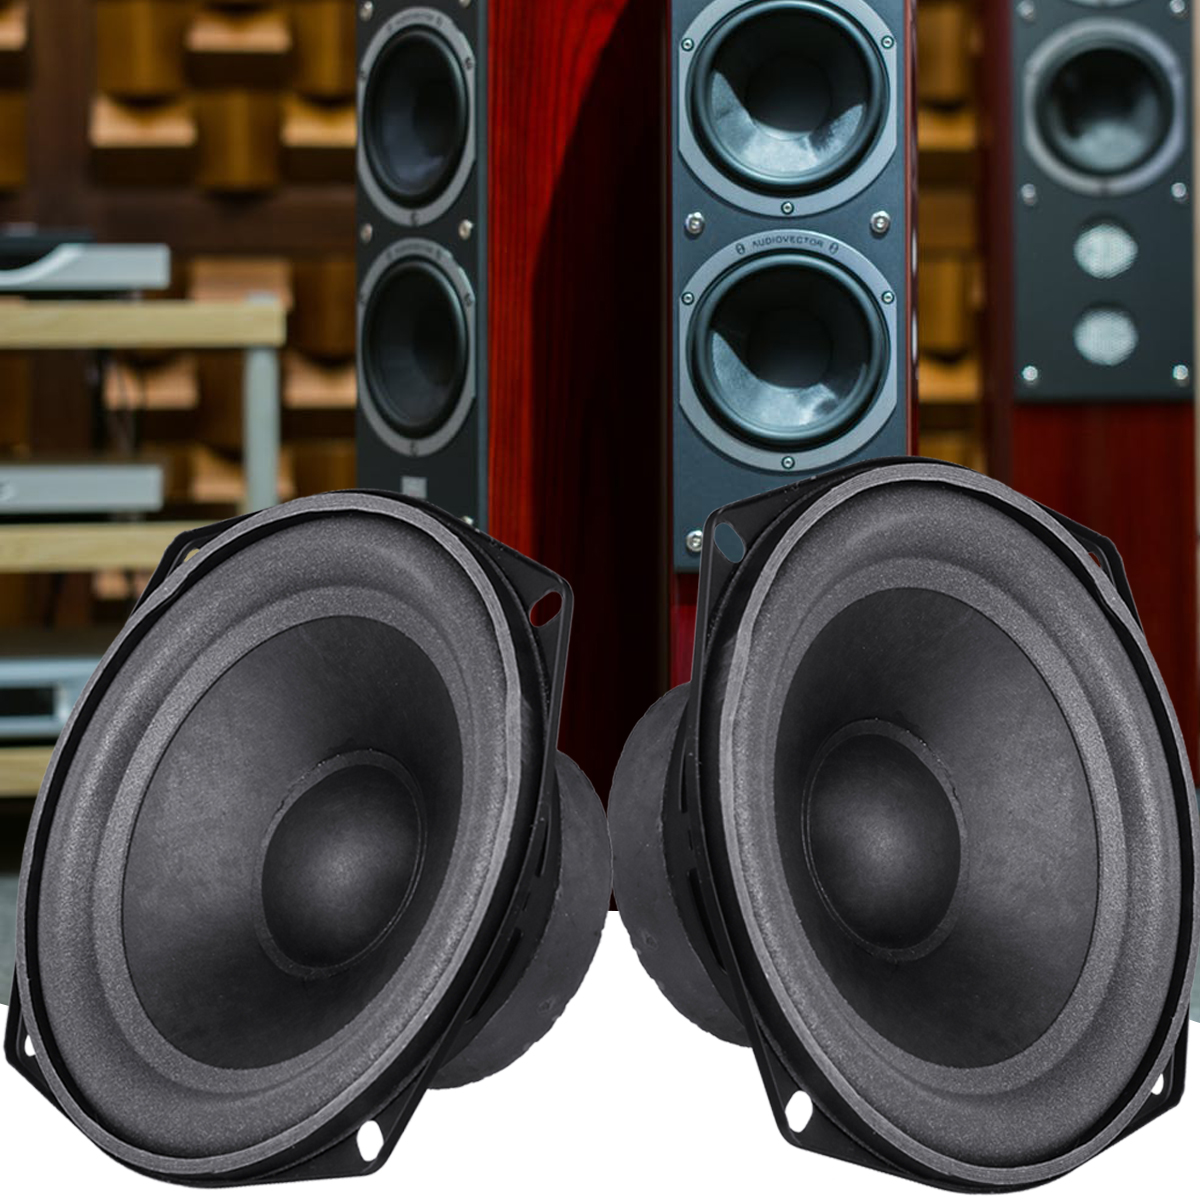 2pcs 5.5inch DIY Bass Horn Speaker Unit Accessories Sound Box Loudspeaker Stereo Subwoofer Speaker Unit Strong Bass Horn Tweeter